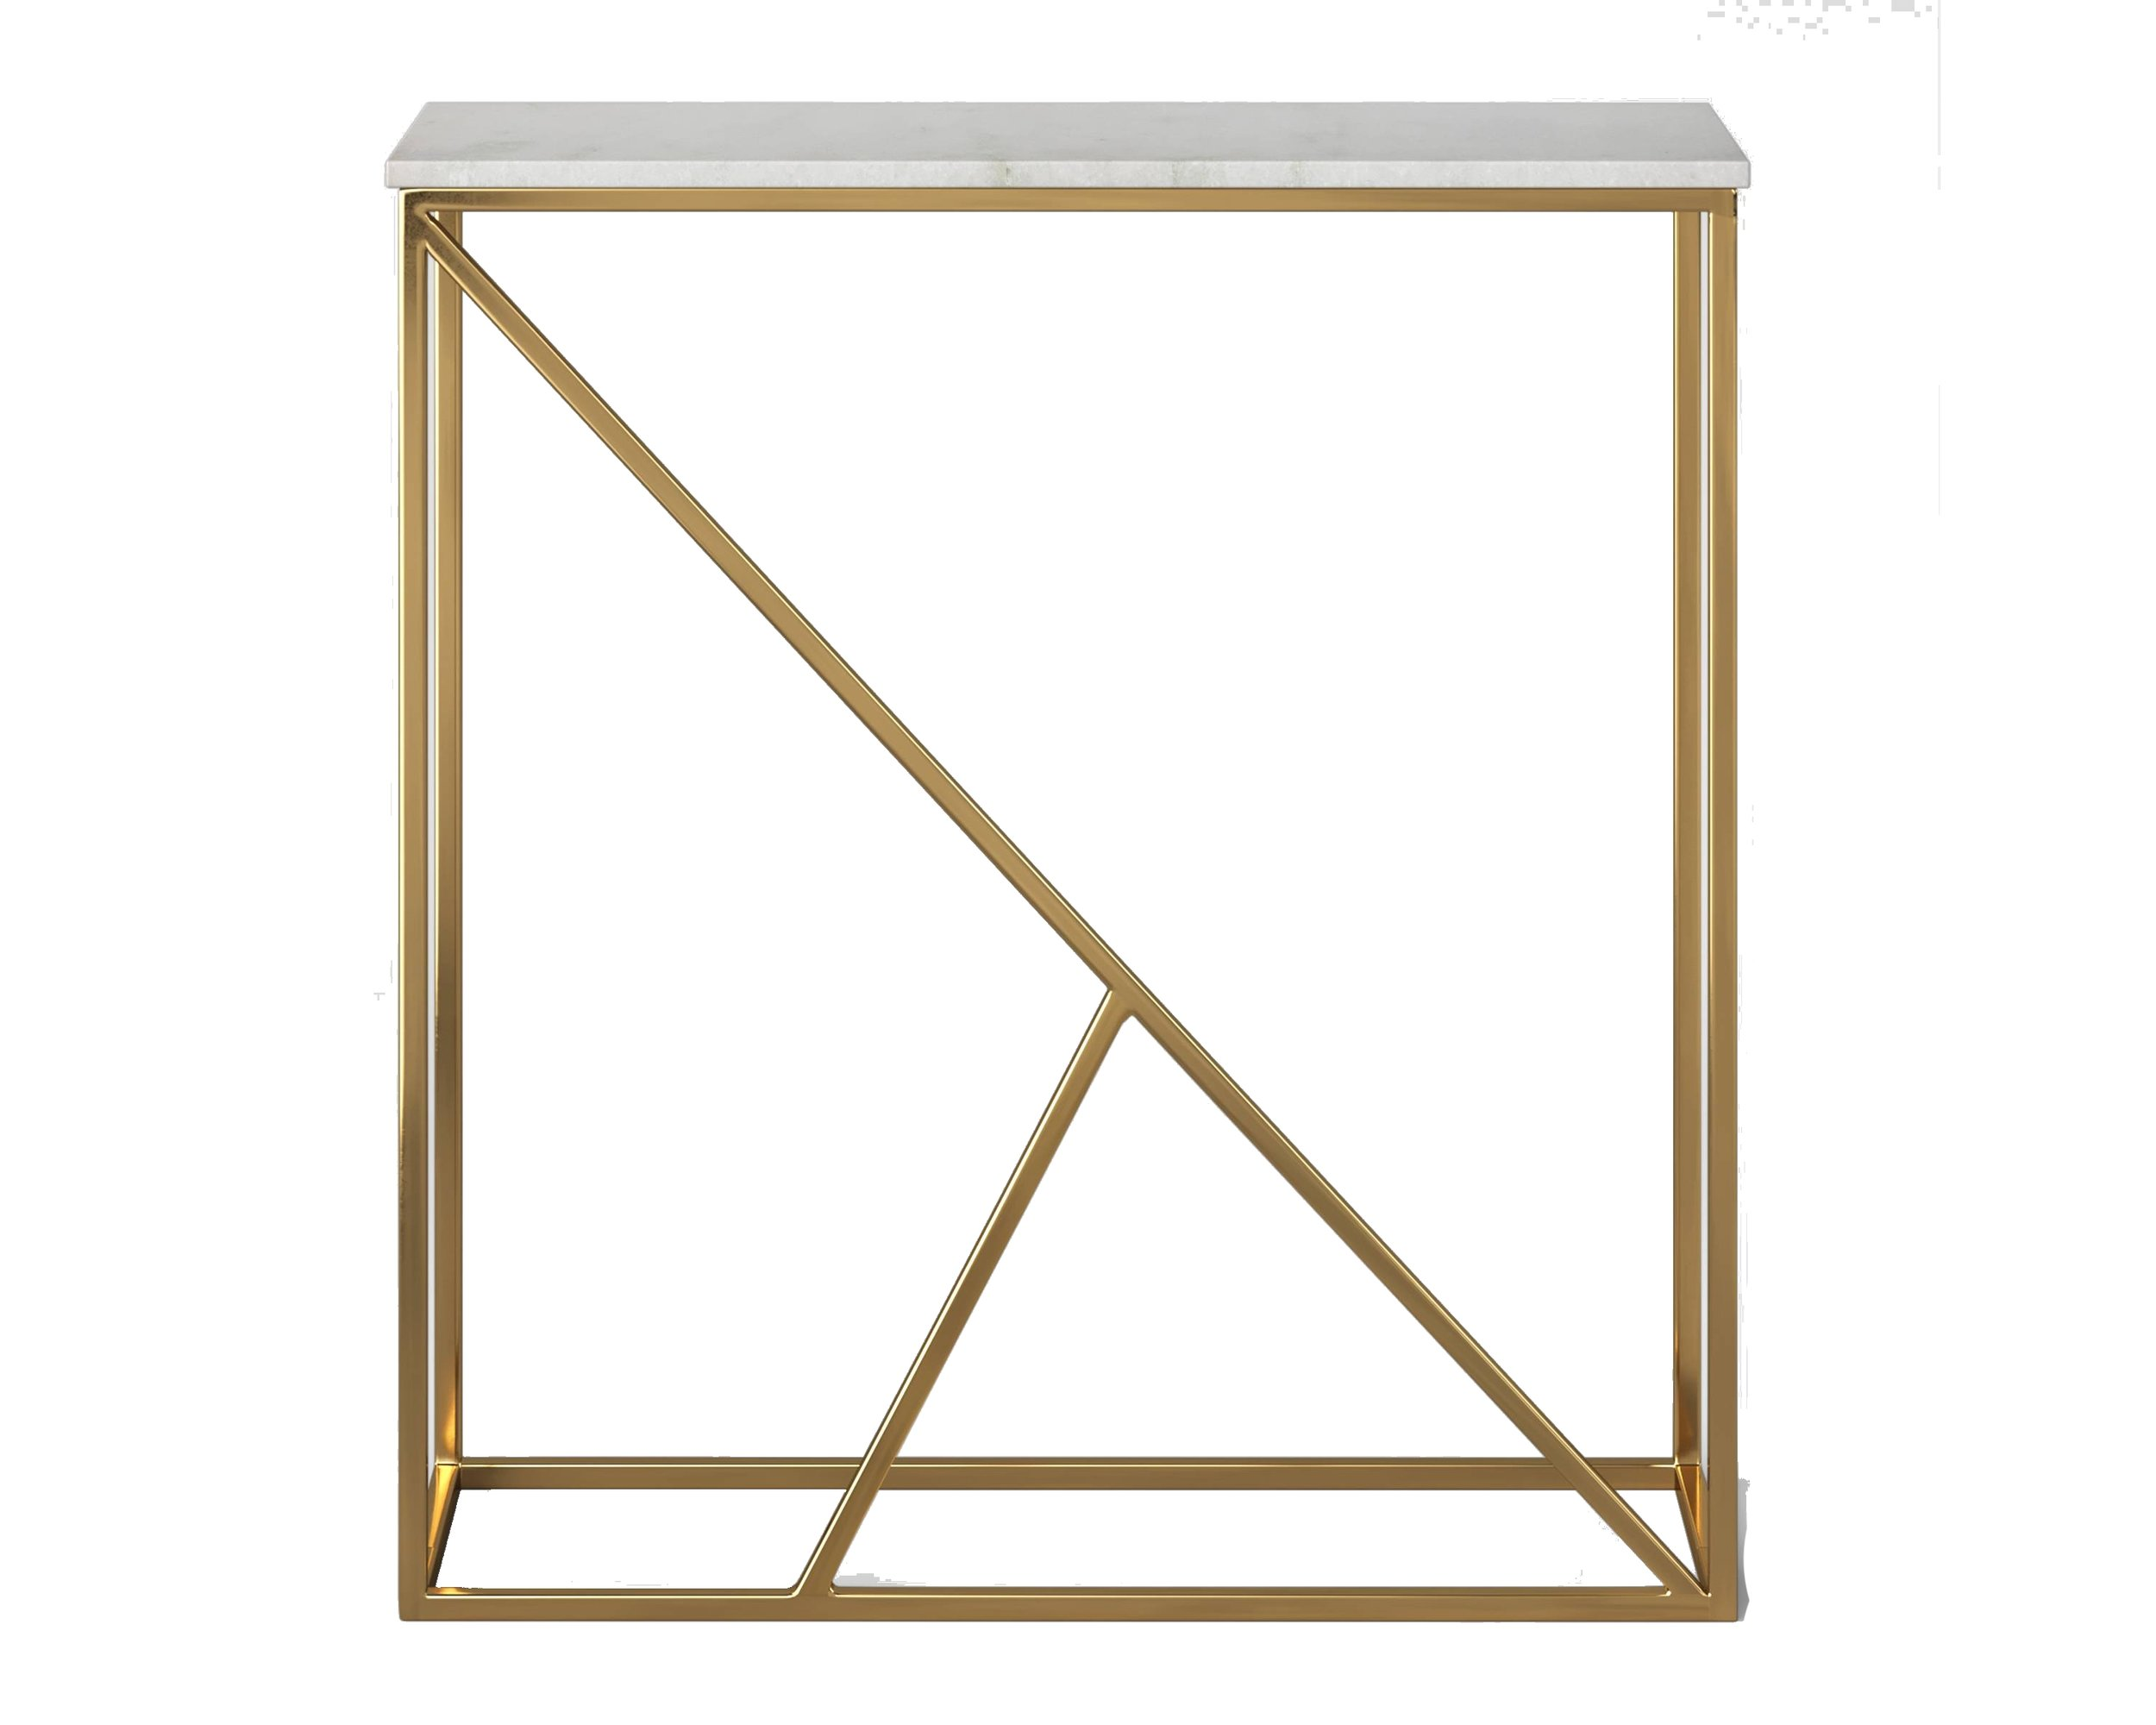 target marble + brass table